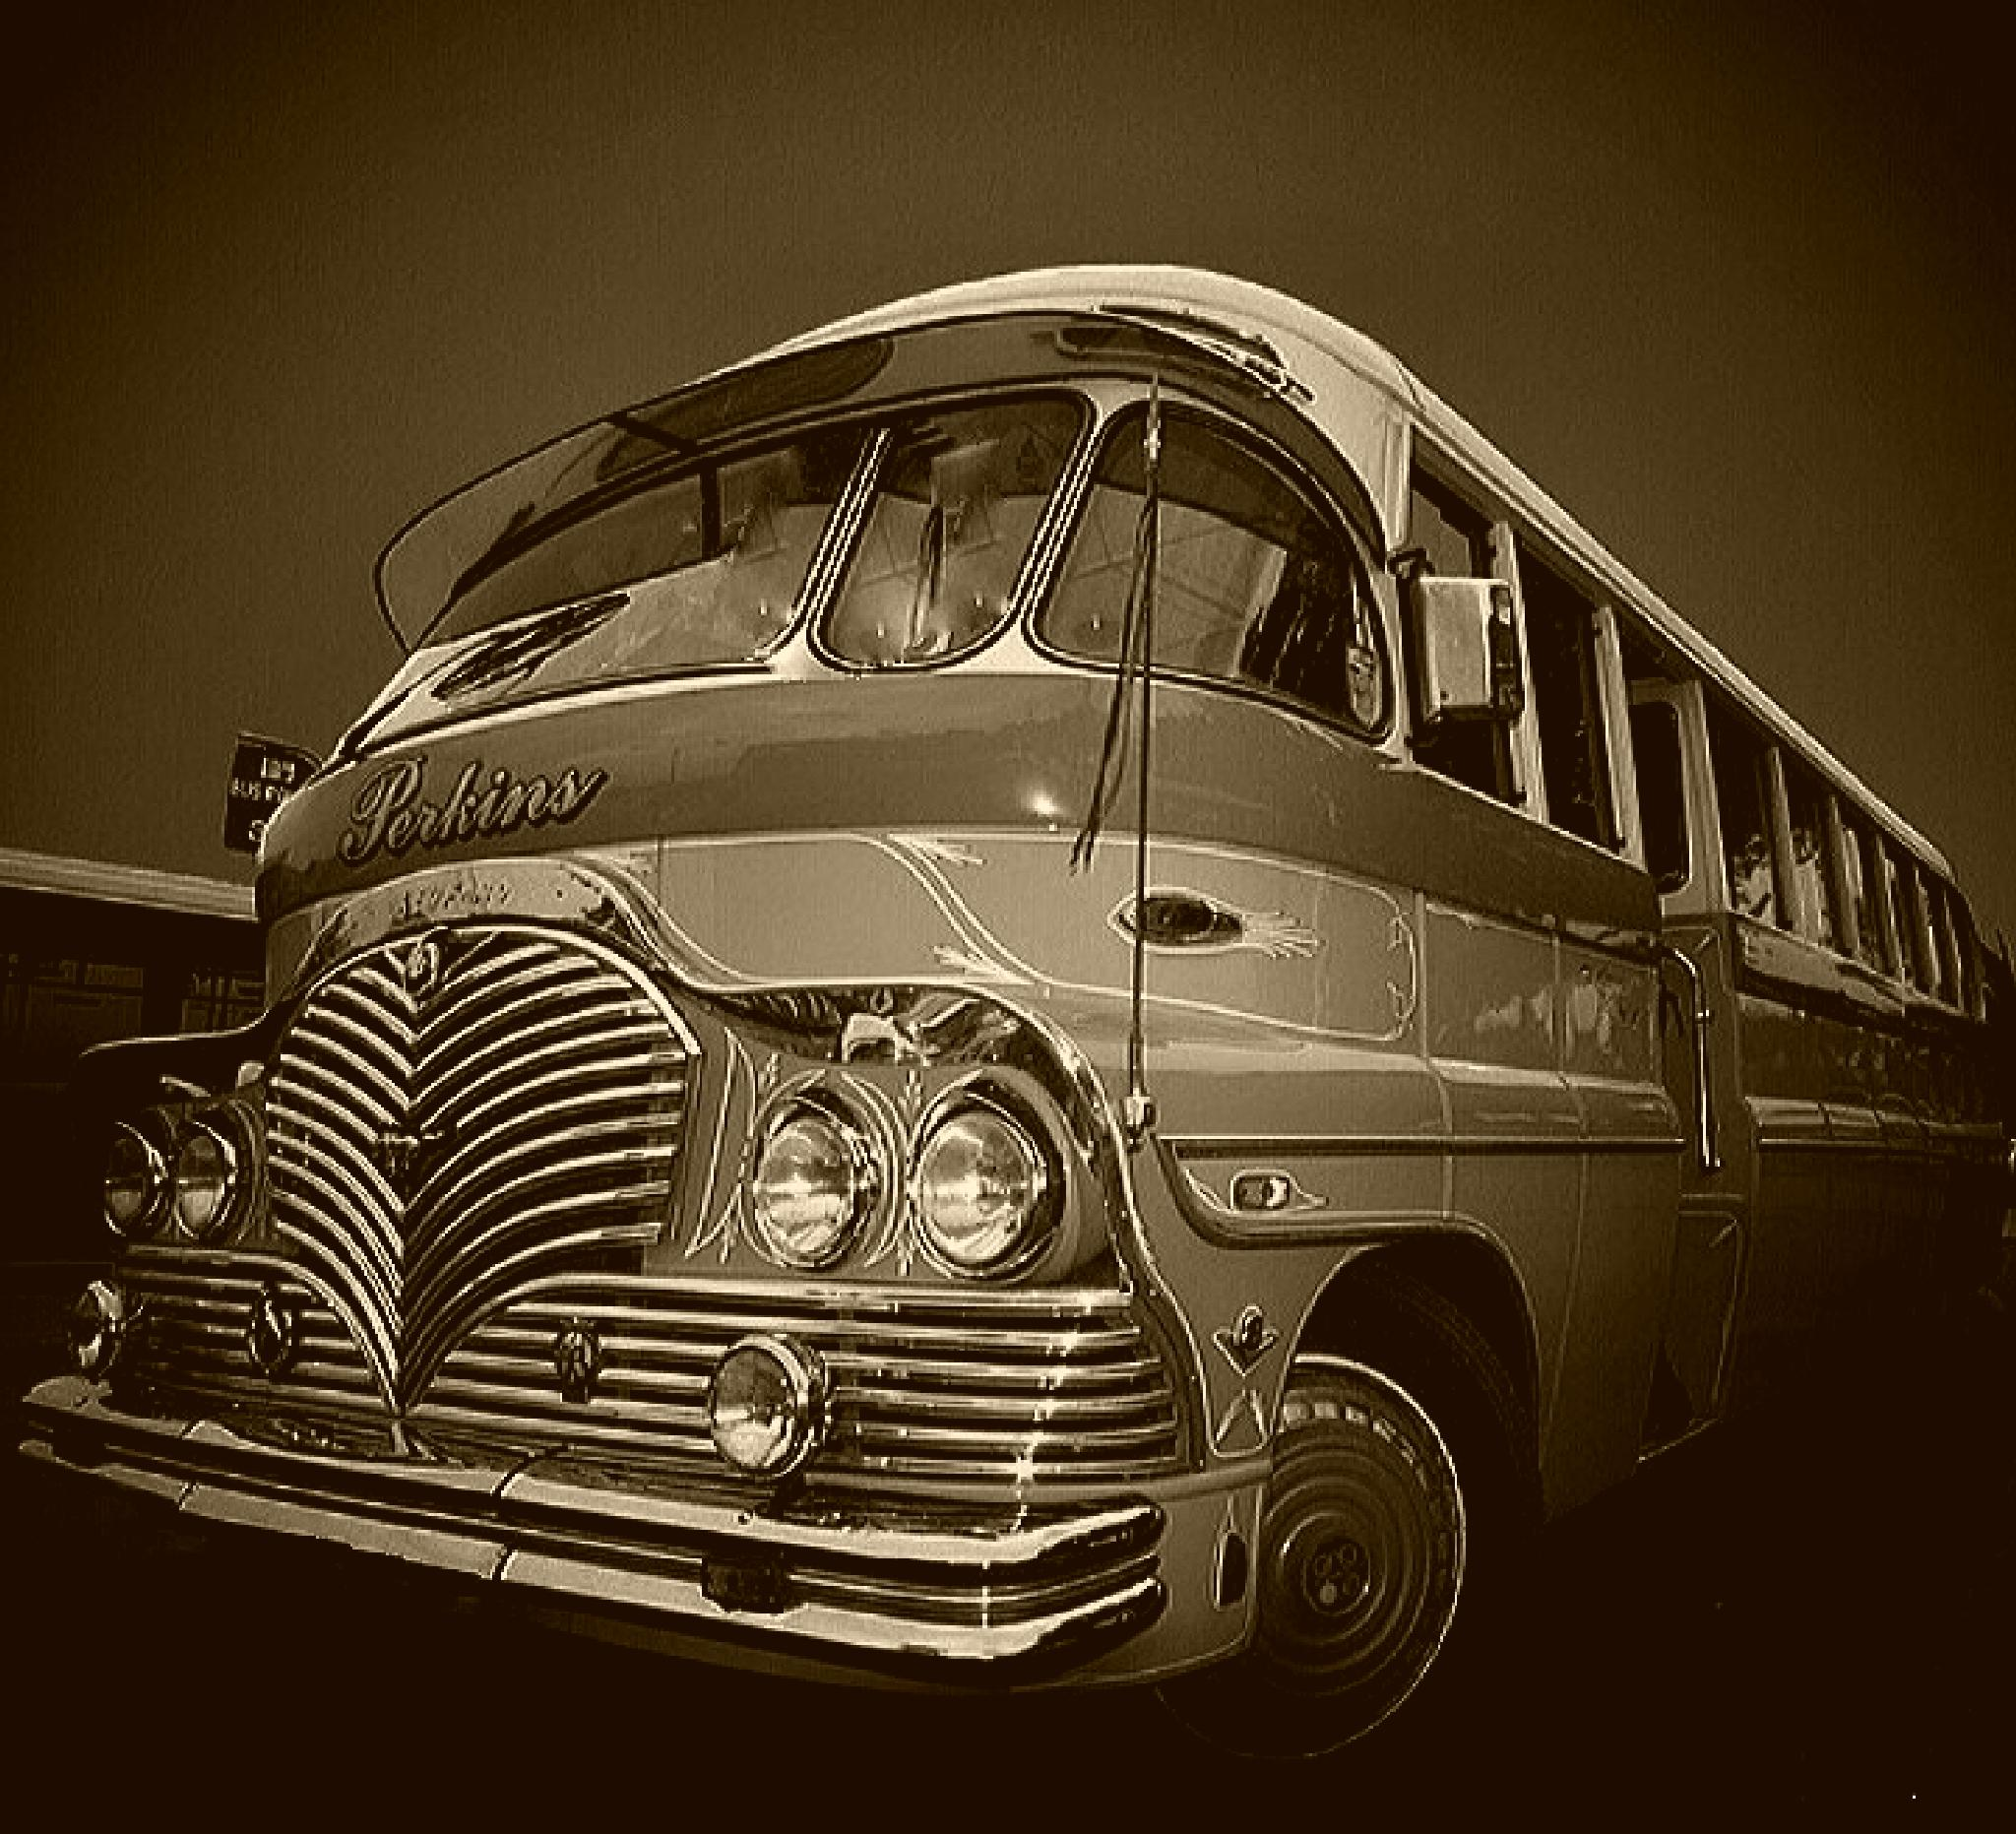 Passenger Transport Bus by Mario Cilia